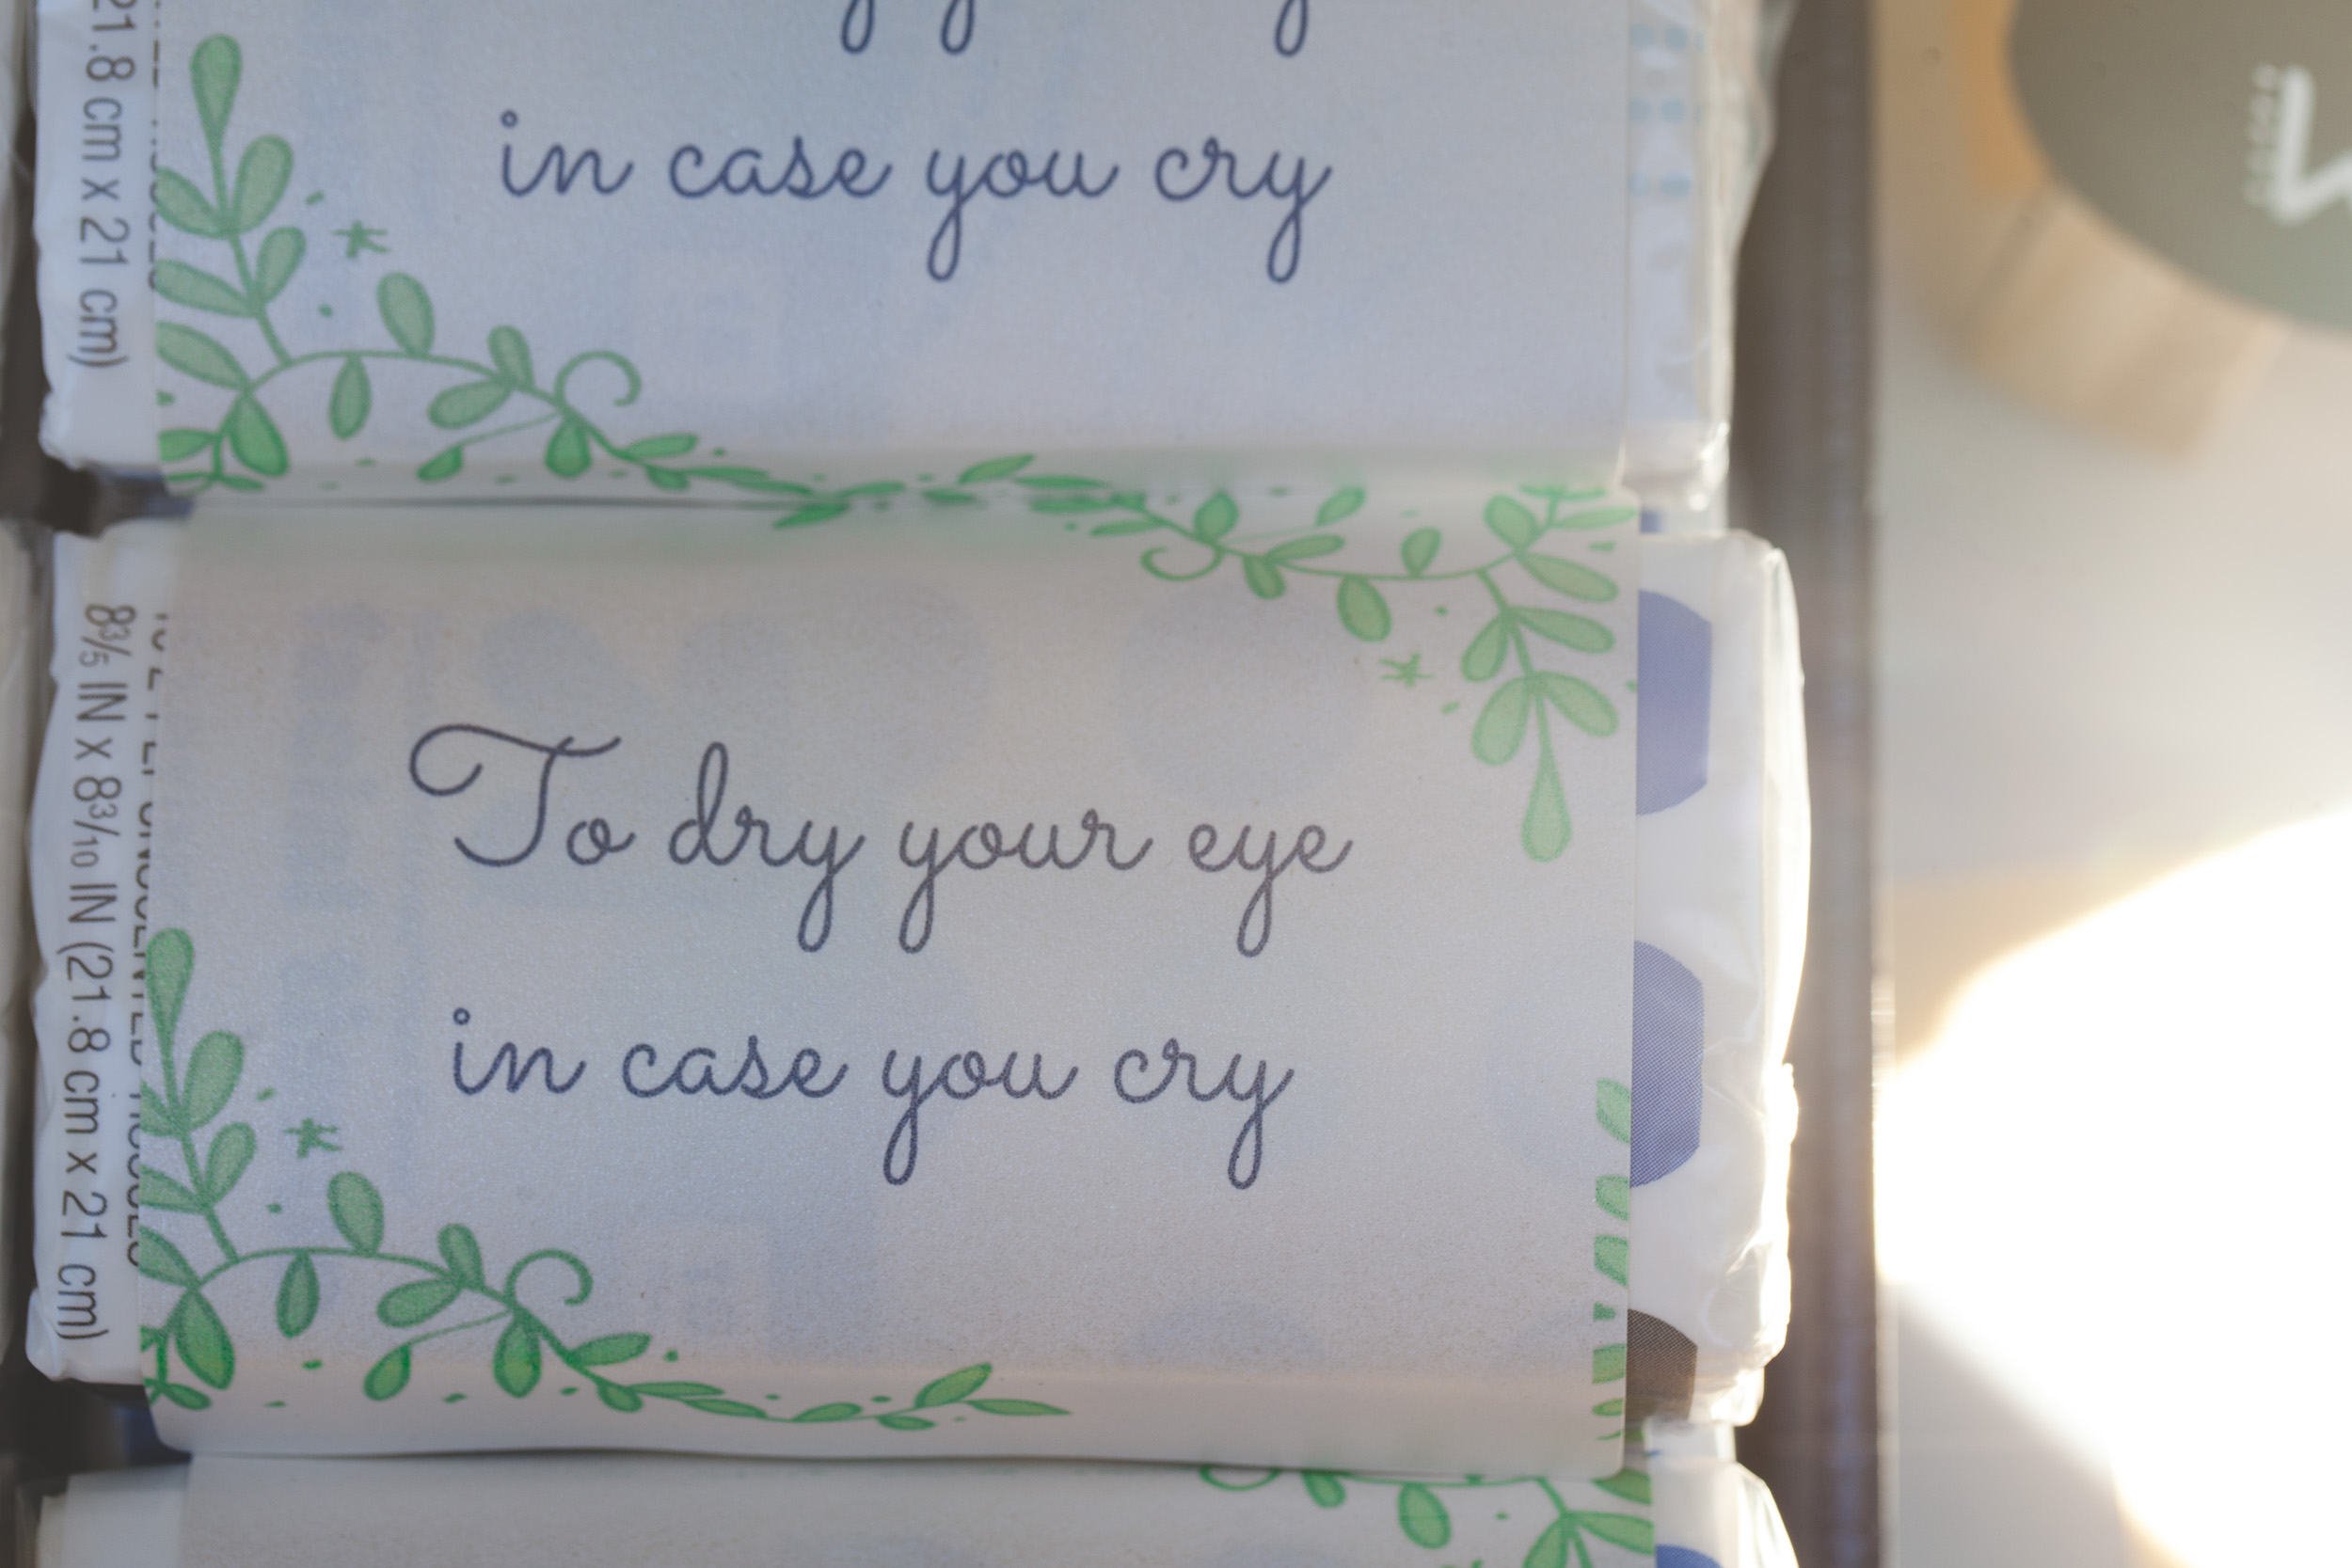 to dry your eye in case you cry